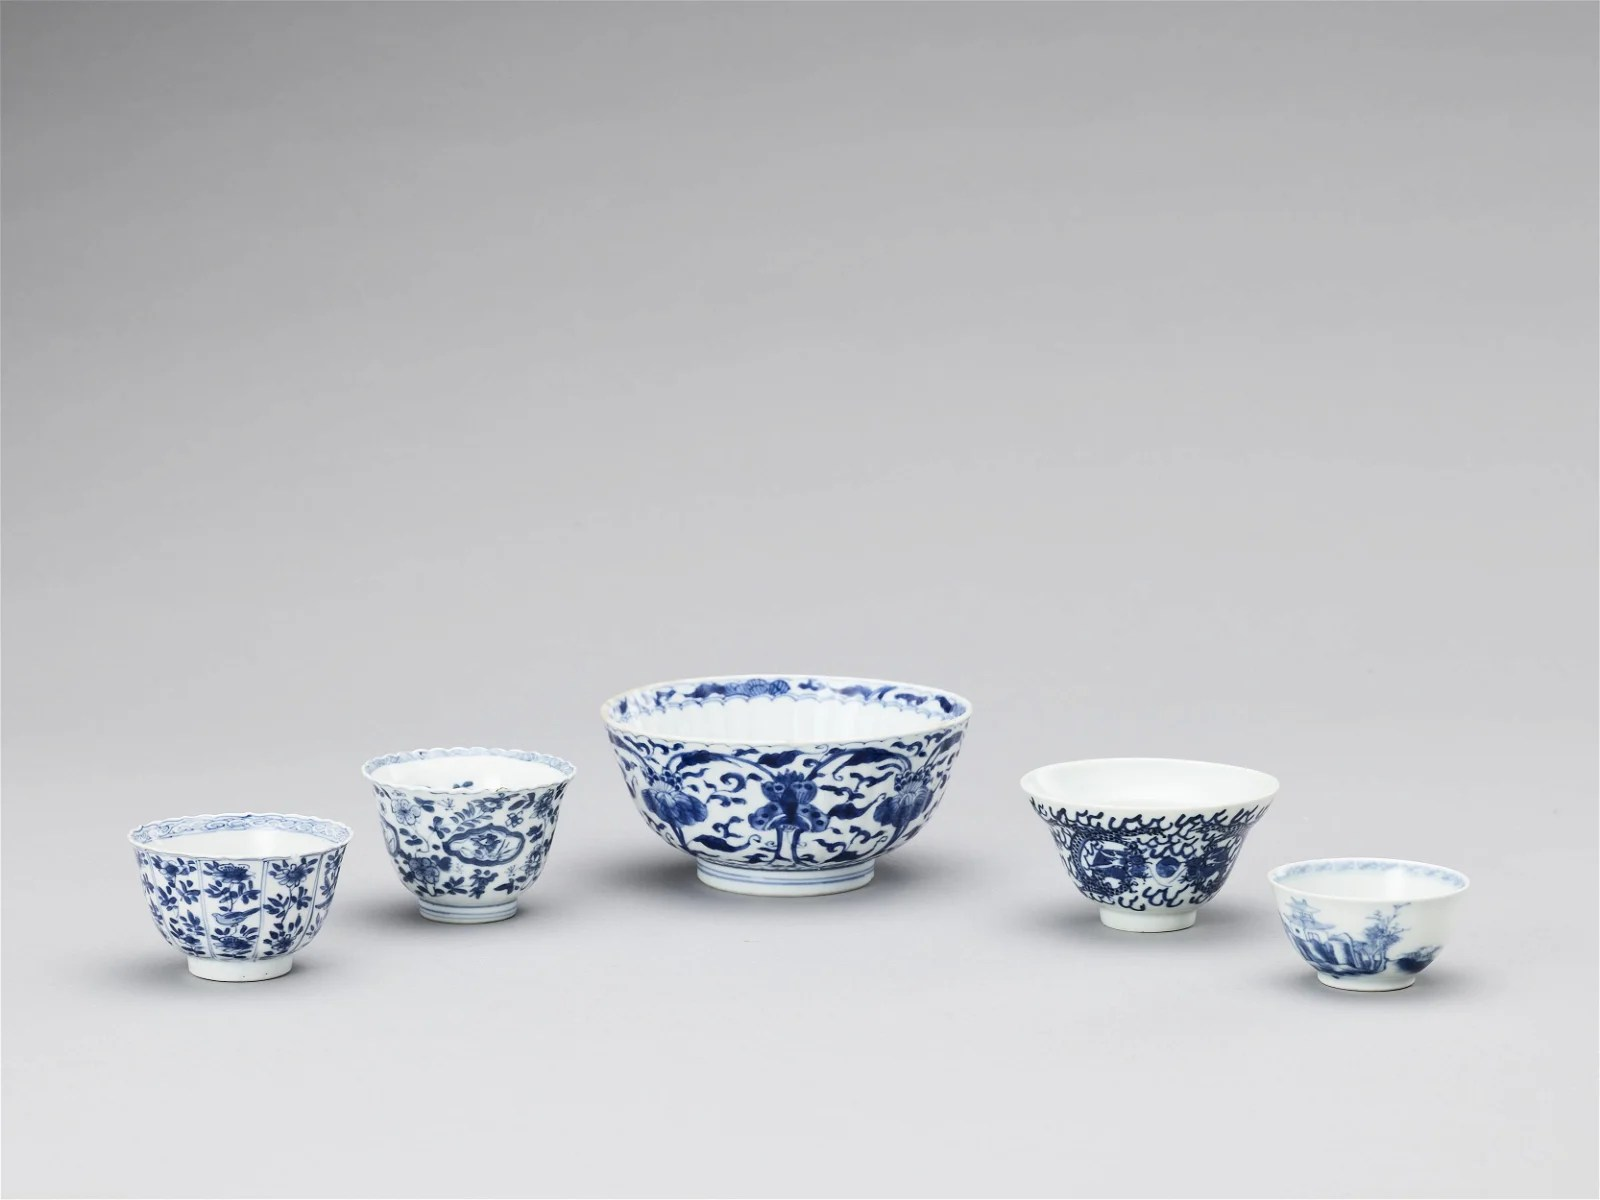 A GROUP OF FIVE BLUE AND WHITE PORCELAIN BOWLS